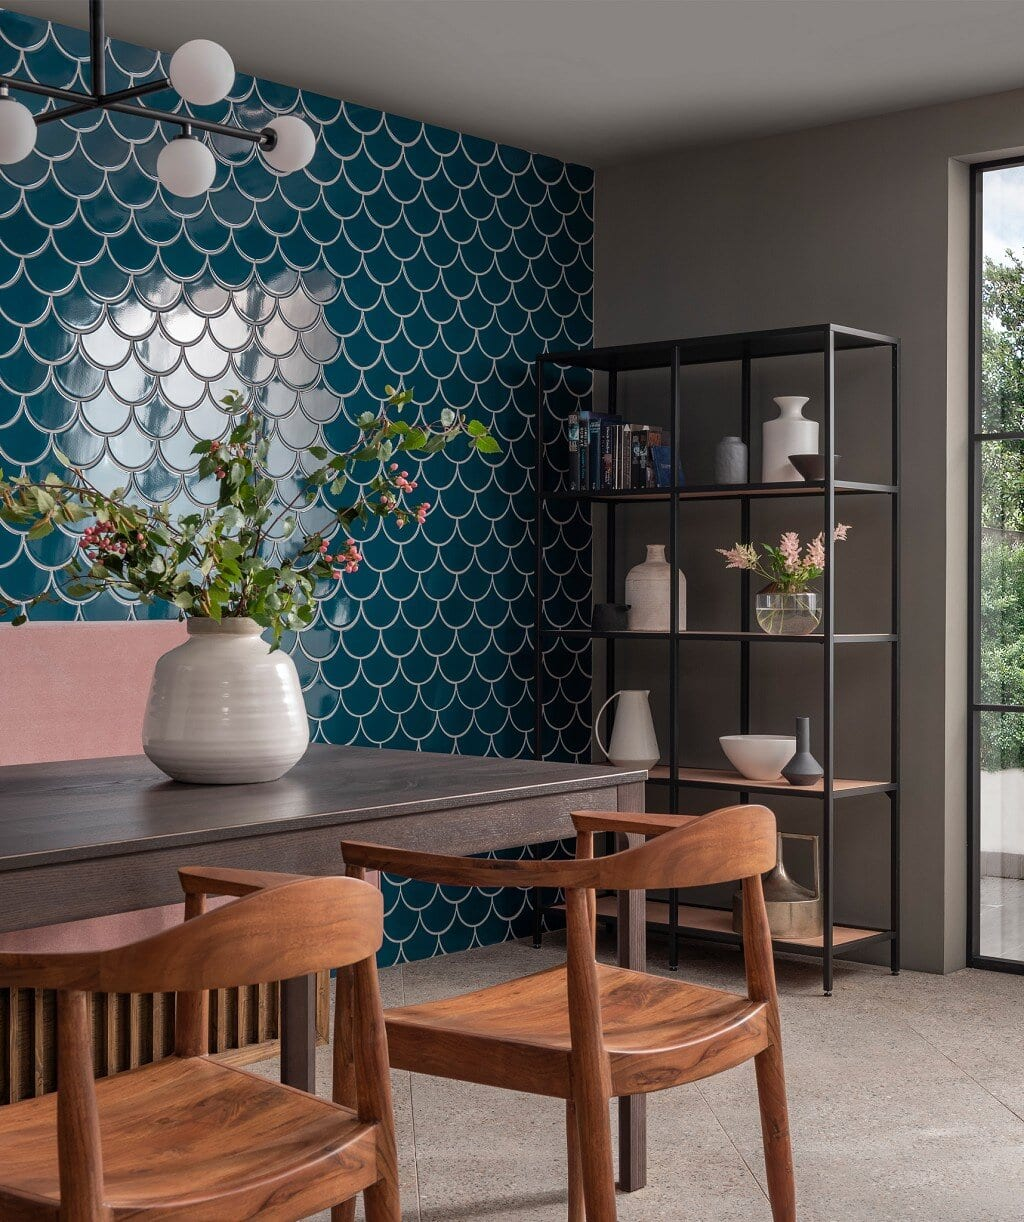 Mid-century and Industrial furniture adding an eclectic feel to this dining room. Credit: Topps Tiles